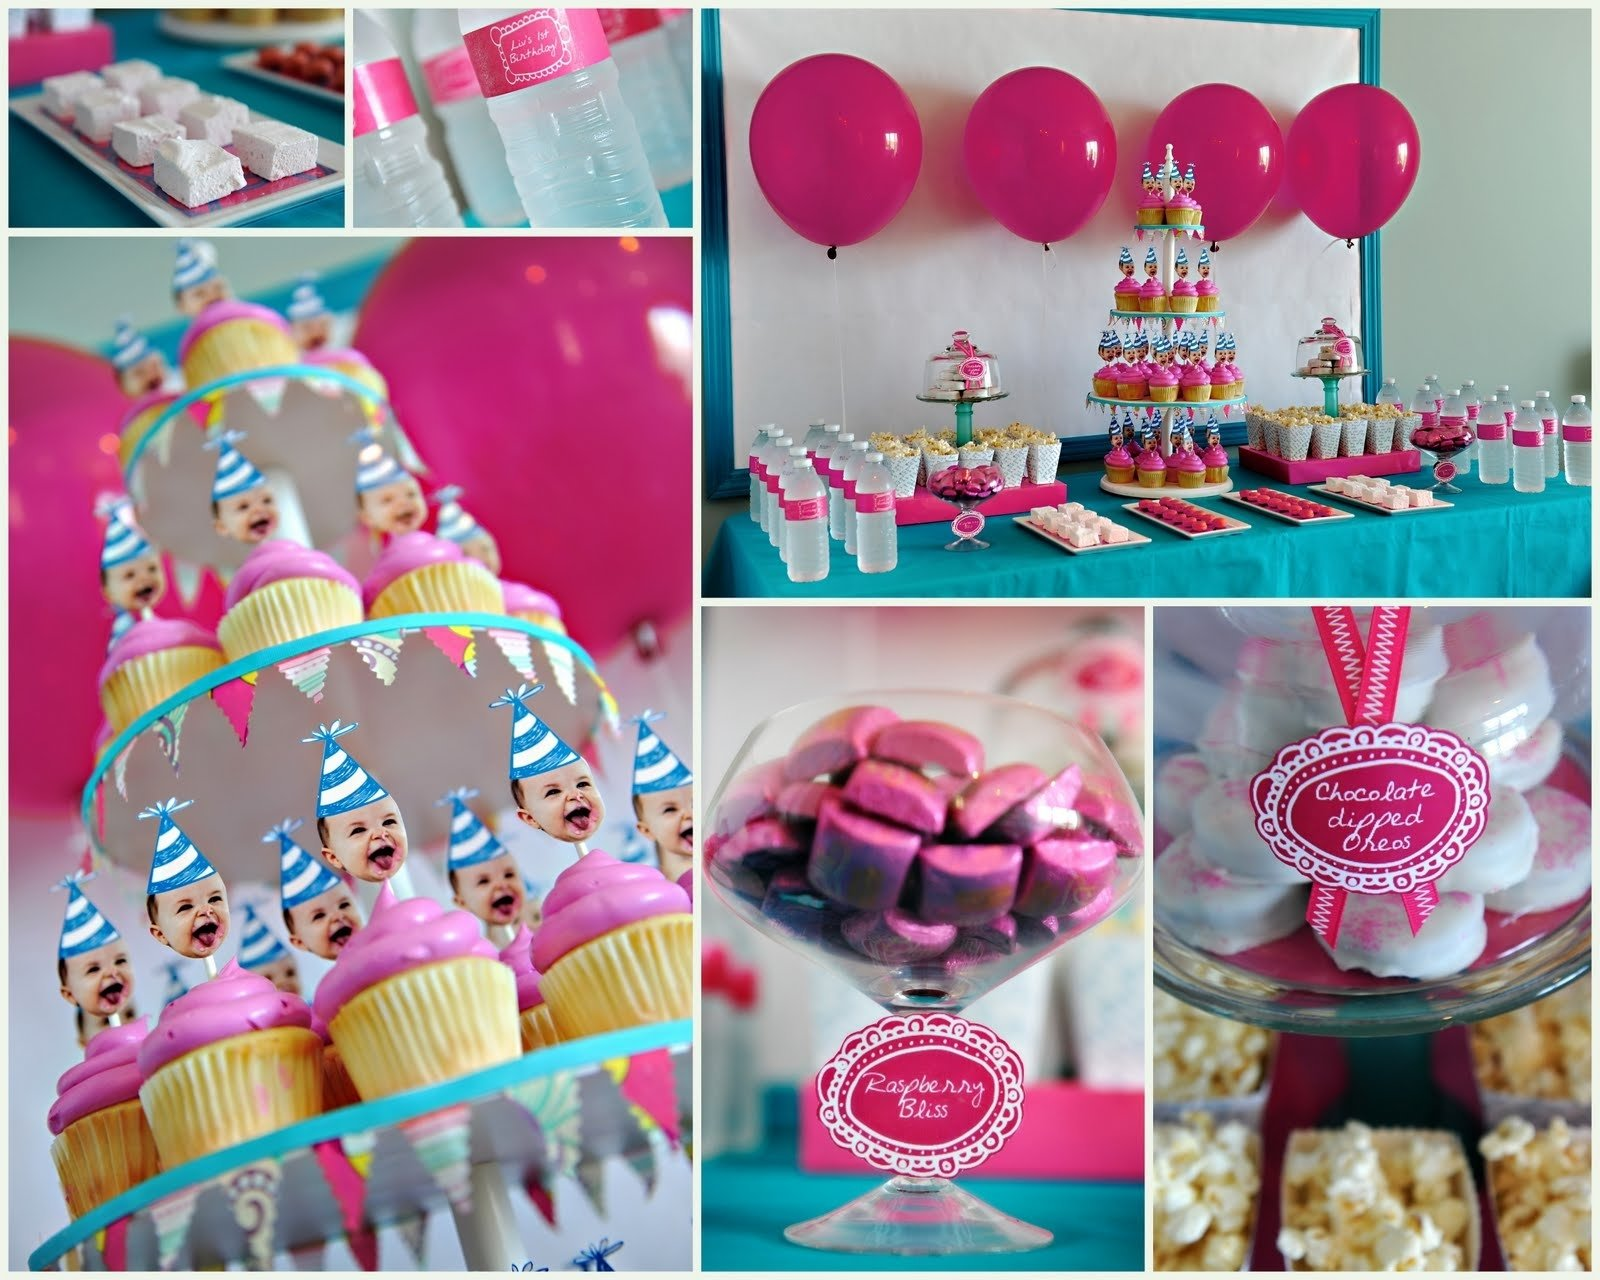 10 Most Recommended Birthday Party Ideas For 10 Year Old Girls elle belle creative one year old in a flash a first birthday party 31 2020